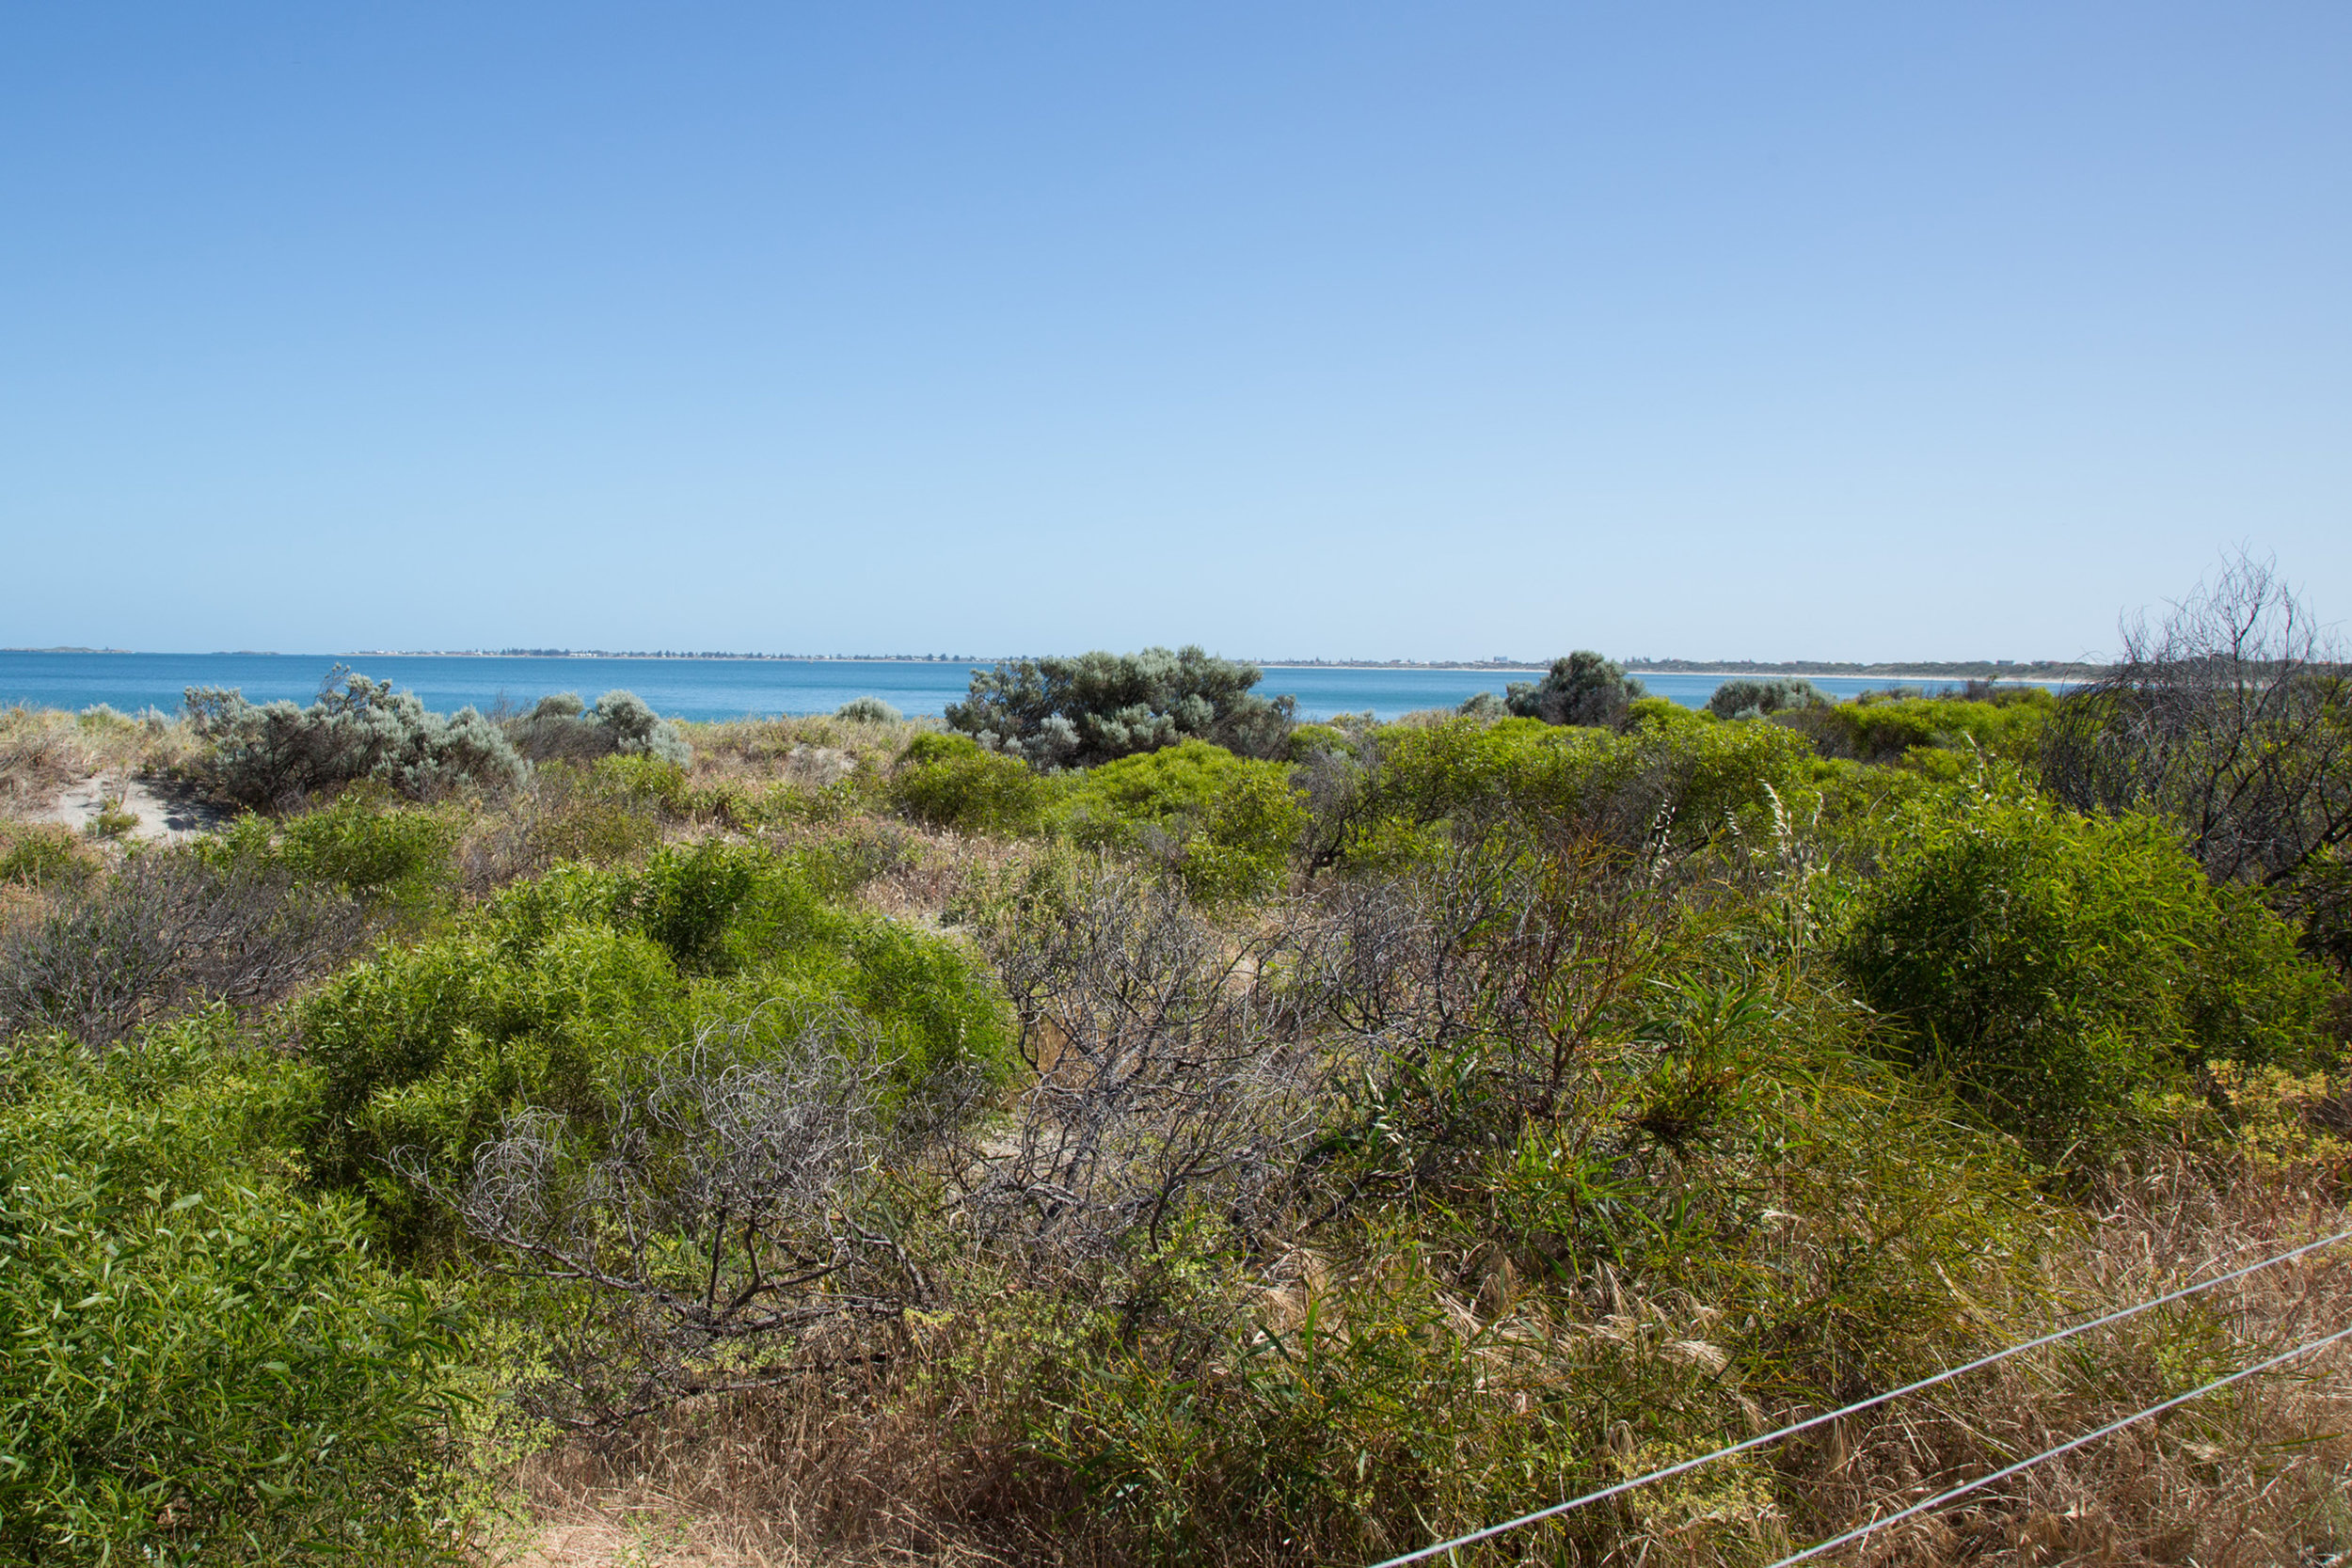 Plate 4: Views from the section of the path that runs closer to the beach.